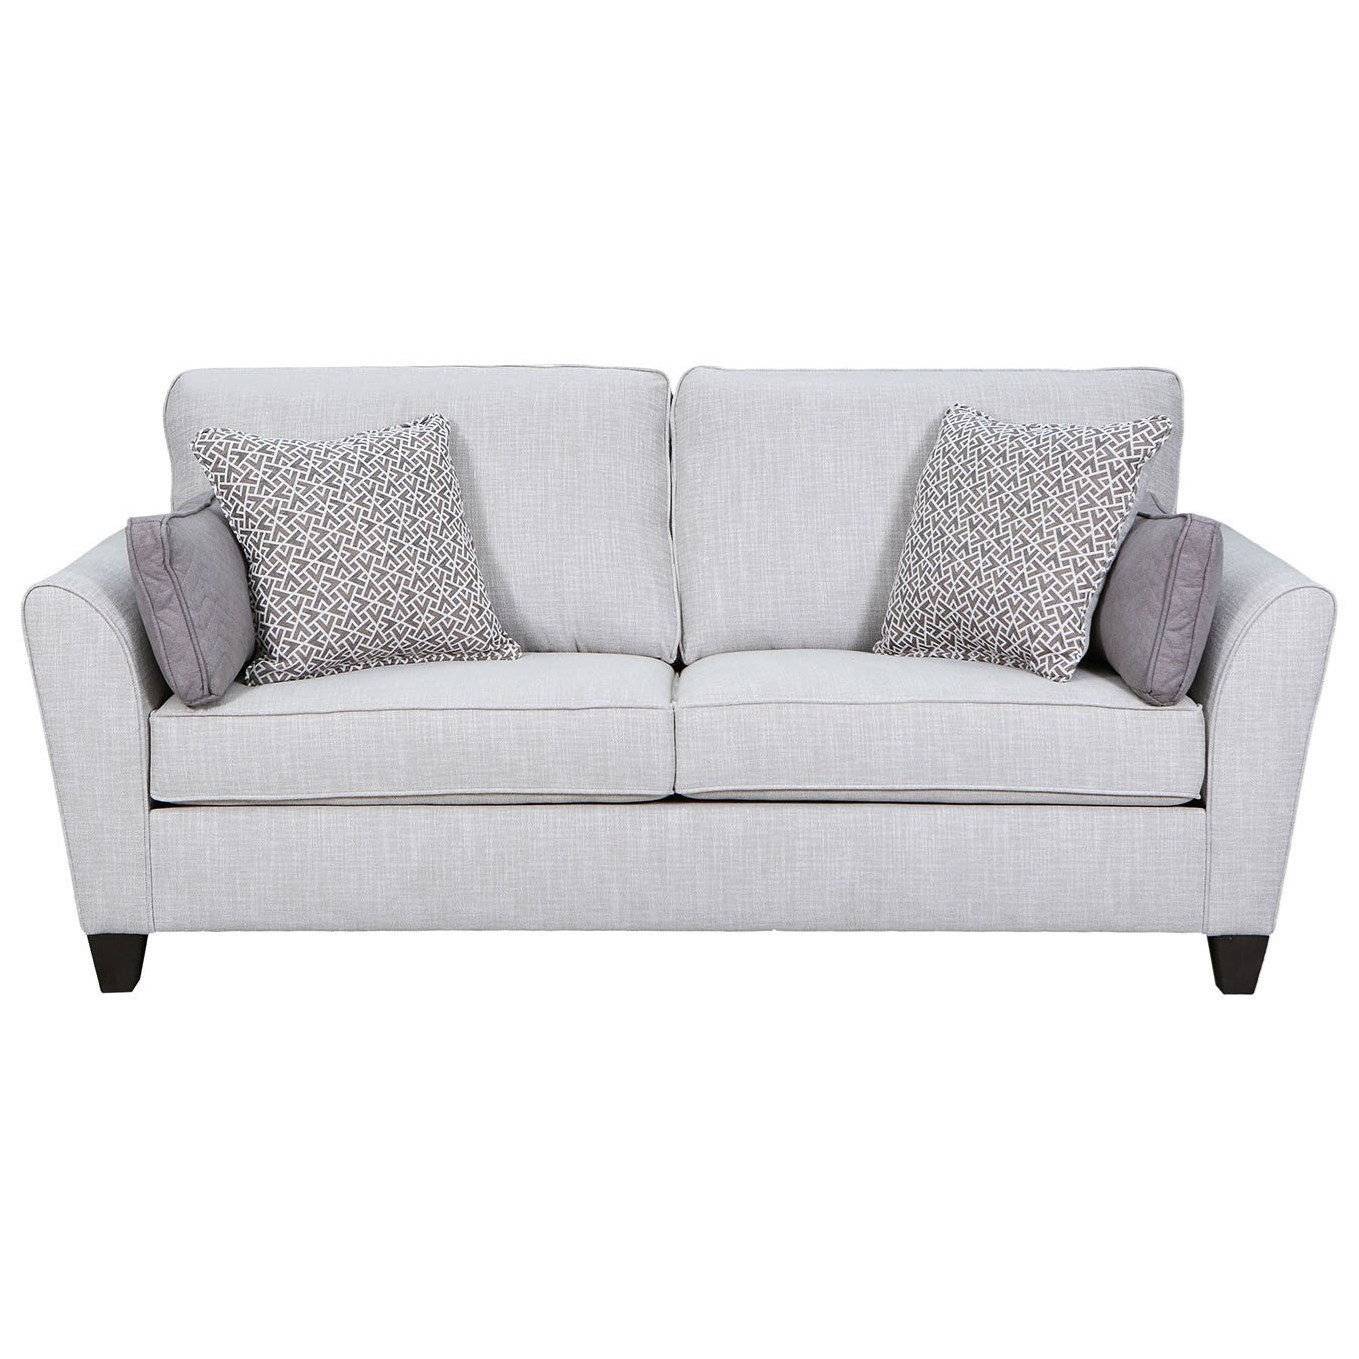 7081 Sofa by Lane at Esprit Decor Home Furnishings